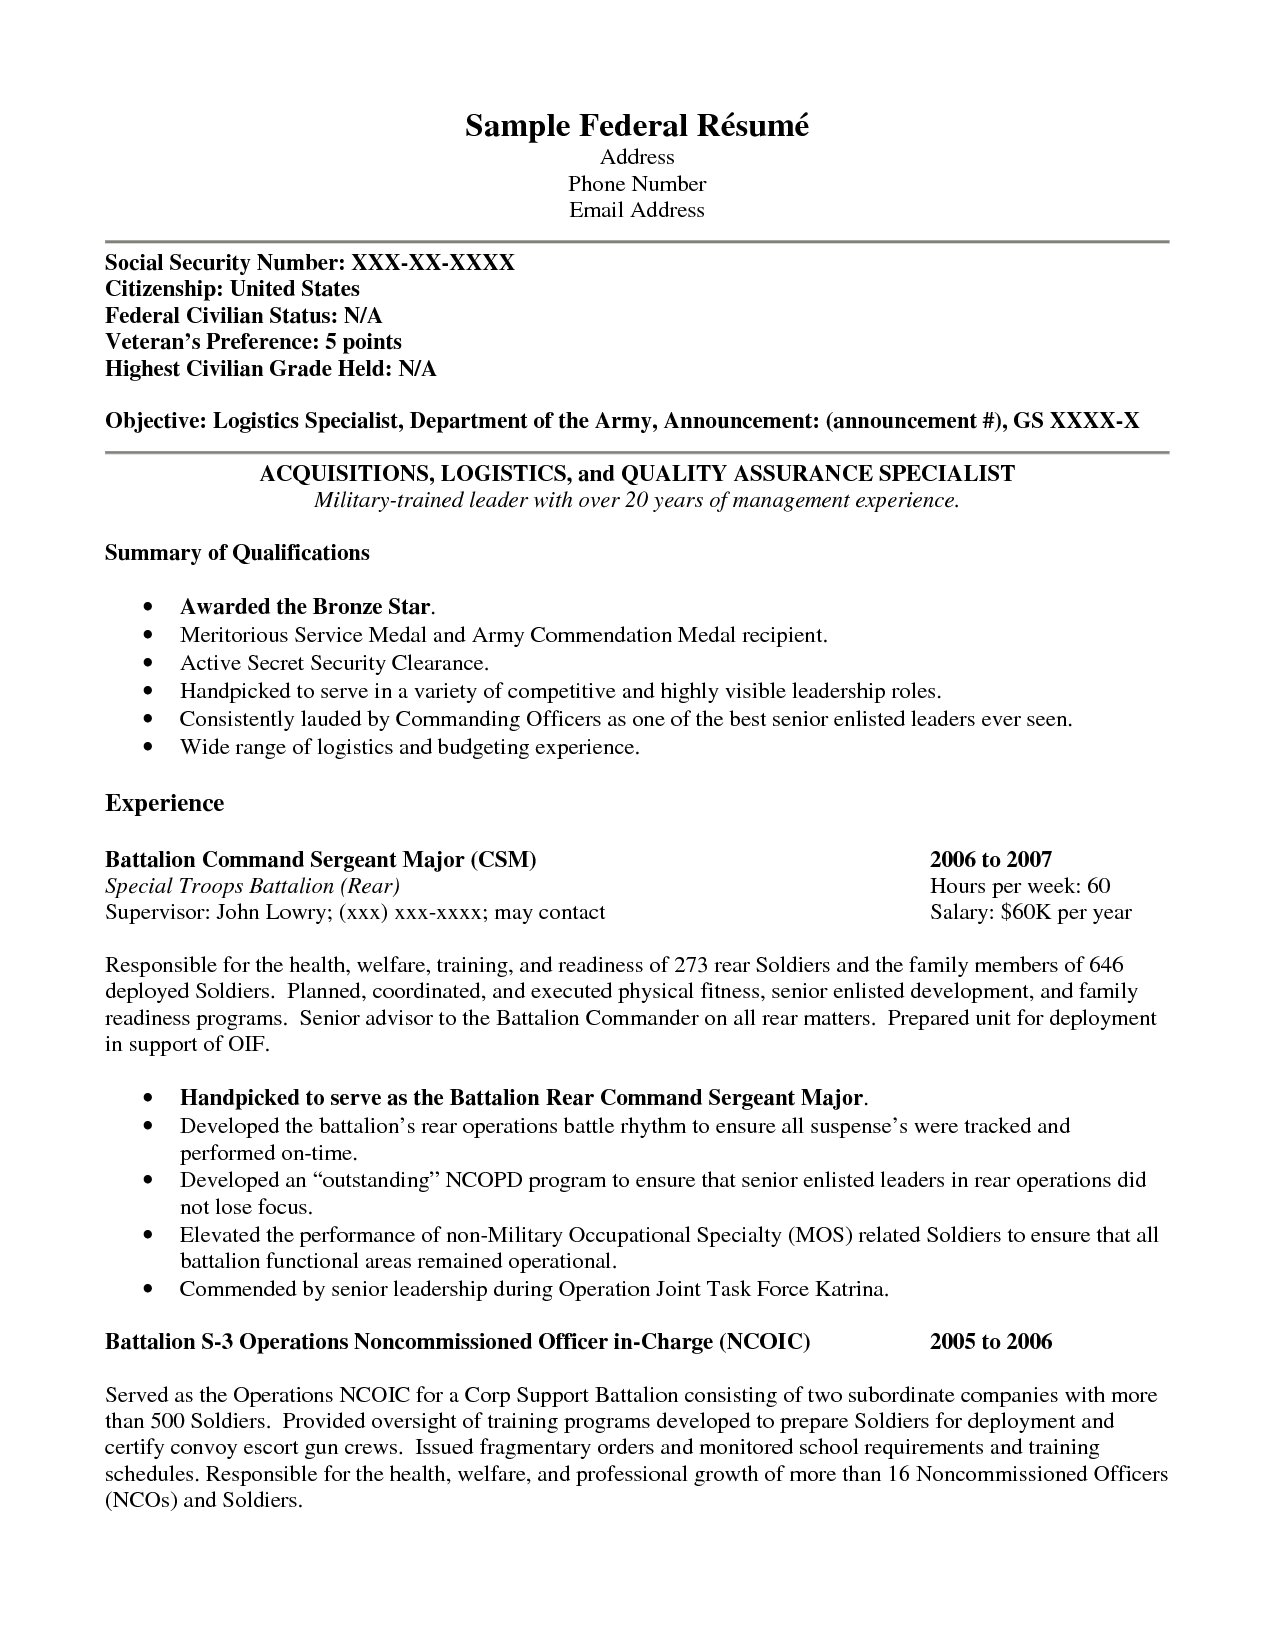 free military resume builder templates and service for veterans veteran template how write logistics specialist army - Veteran Resume Builder